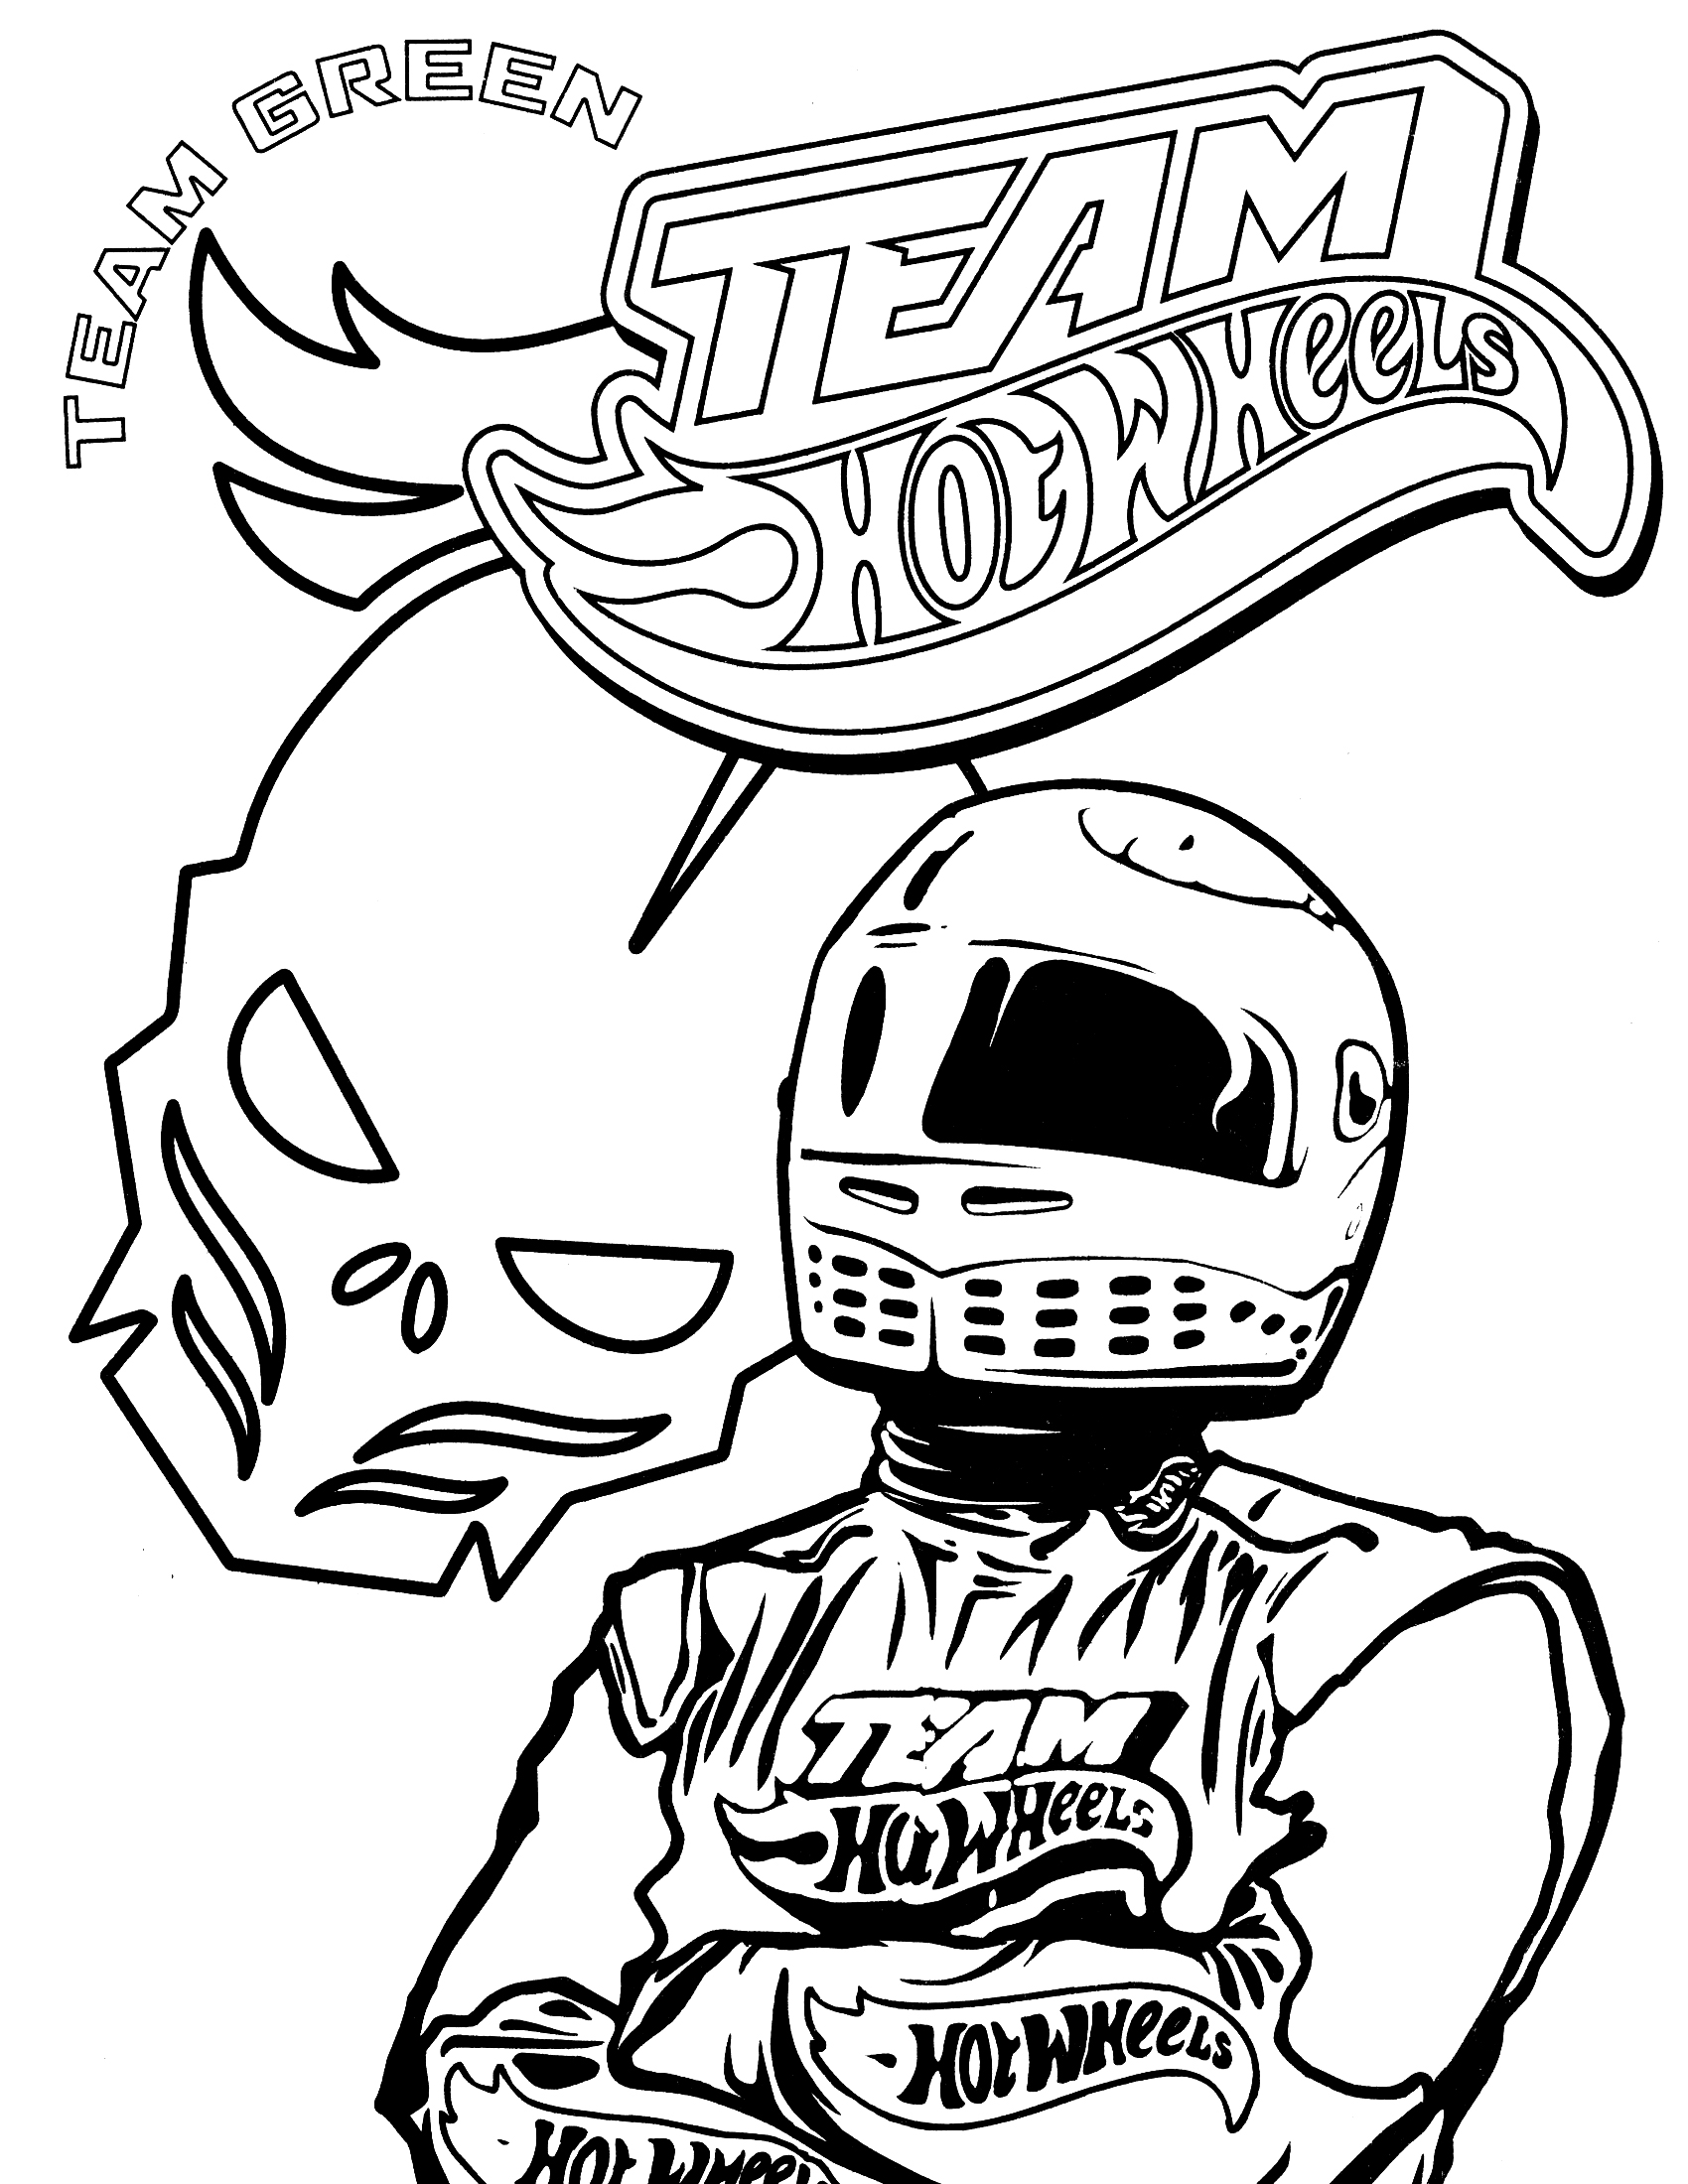 Hot wheel coloring pages to download